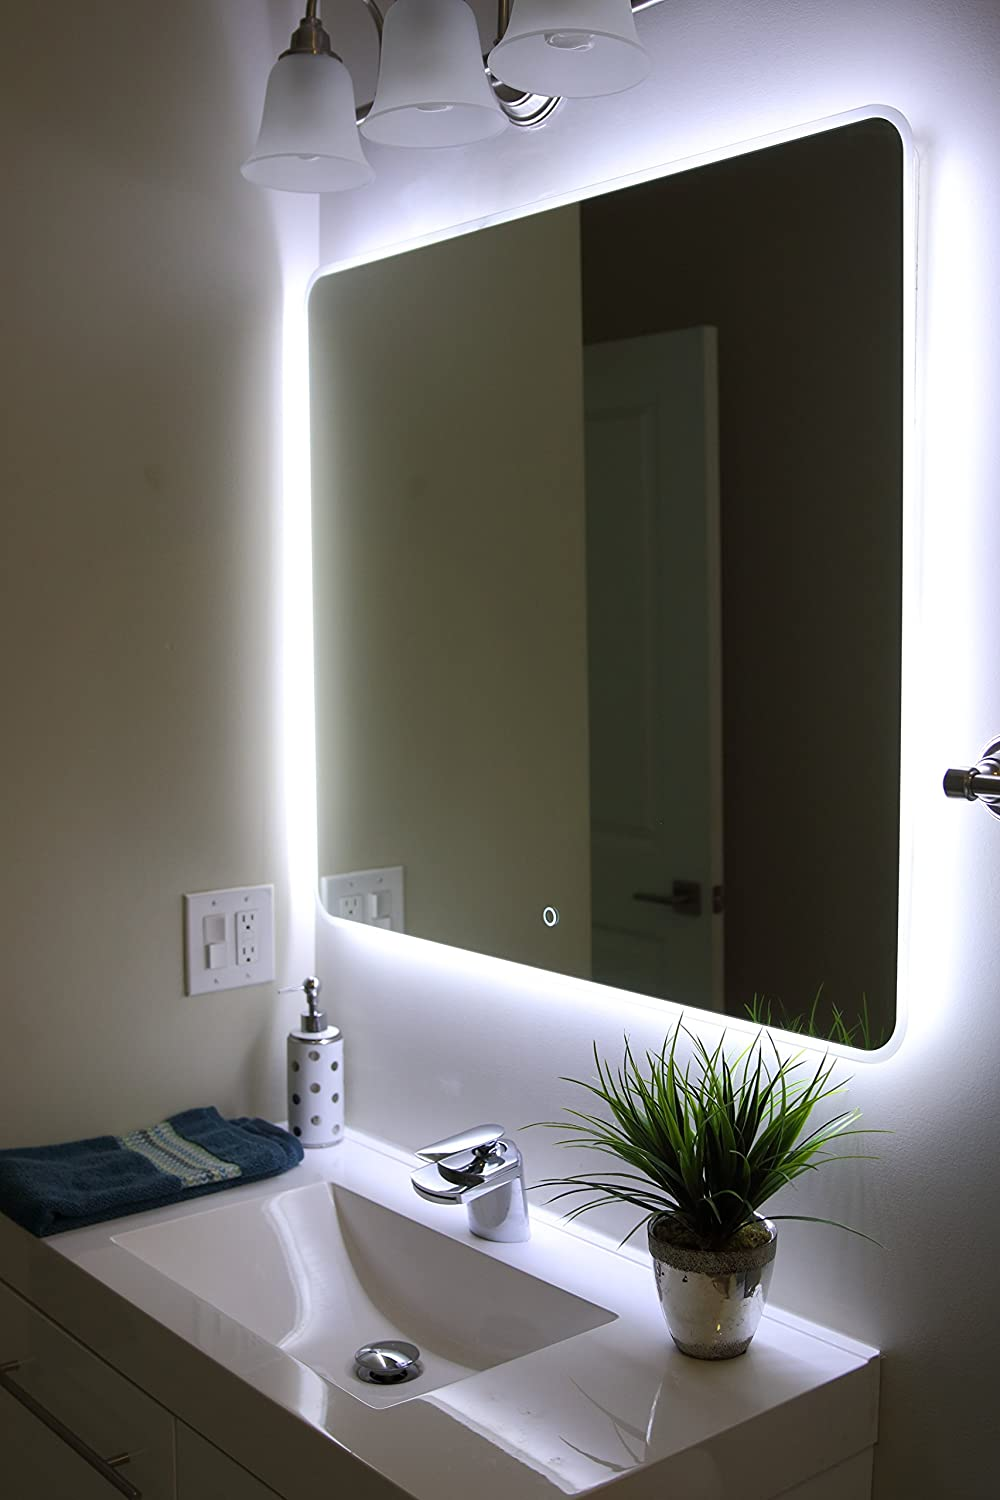 Amazon windbay backlit led light bathroom vanity sink mirror amazon windbay backlit led light bathroom vanity sink mirror illuminated mirror 36 home kitchen mozeypictures